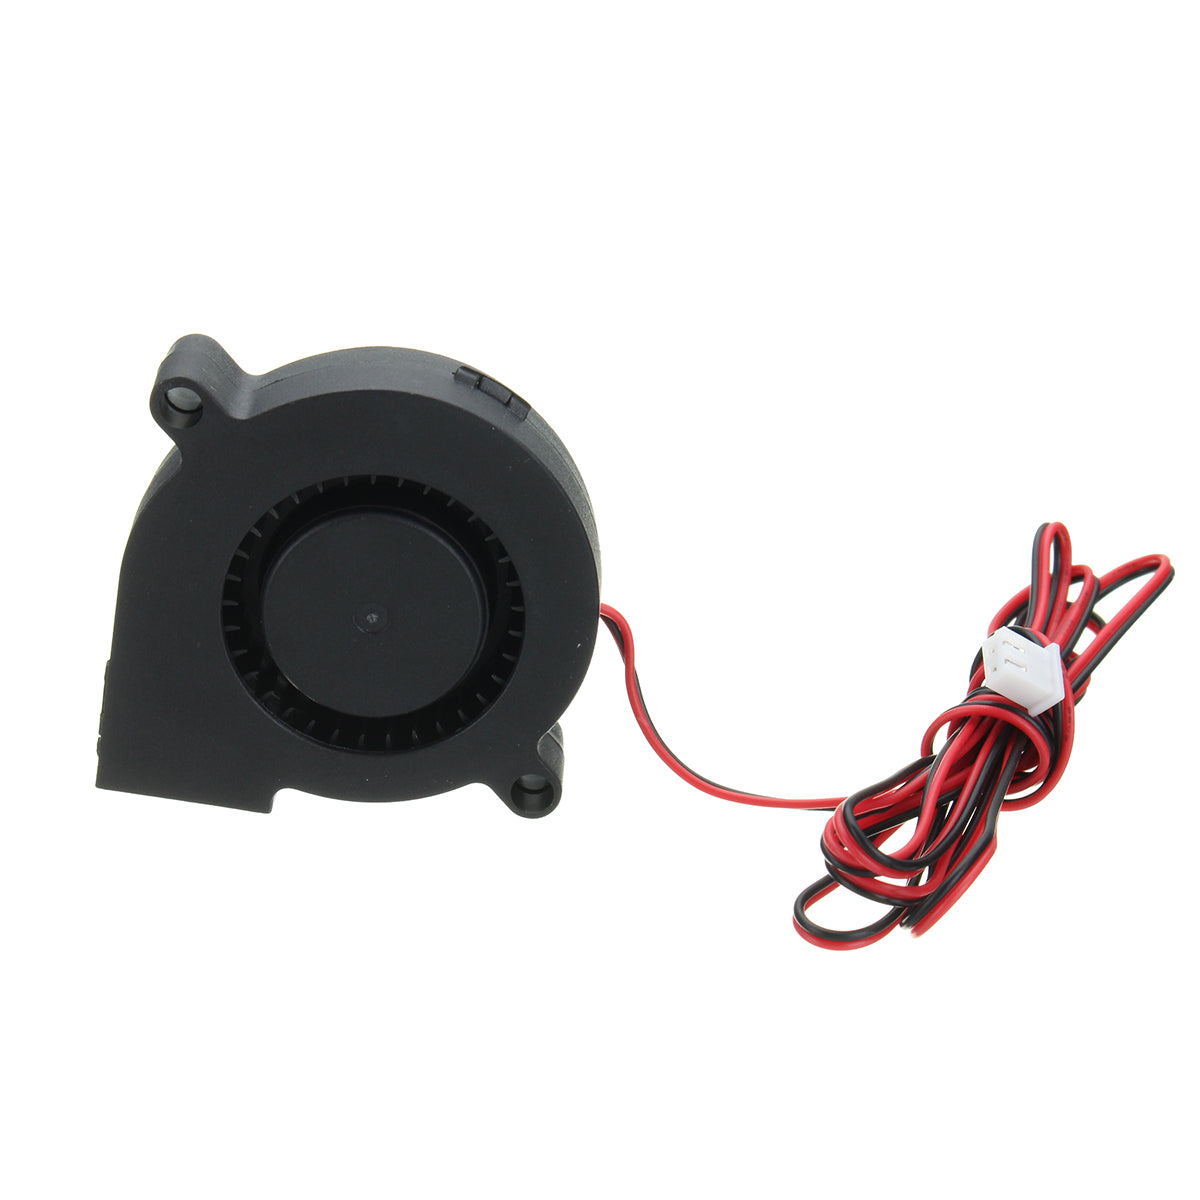 DC 12V 2 Pin 0.13A 50mm Brushless Turbine Blower Cooling Fan for 3D Printer